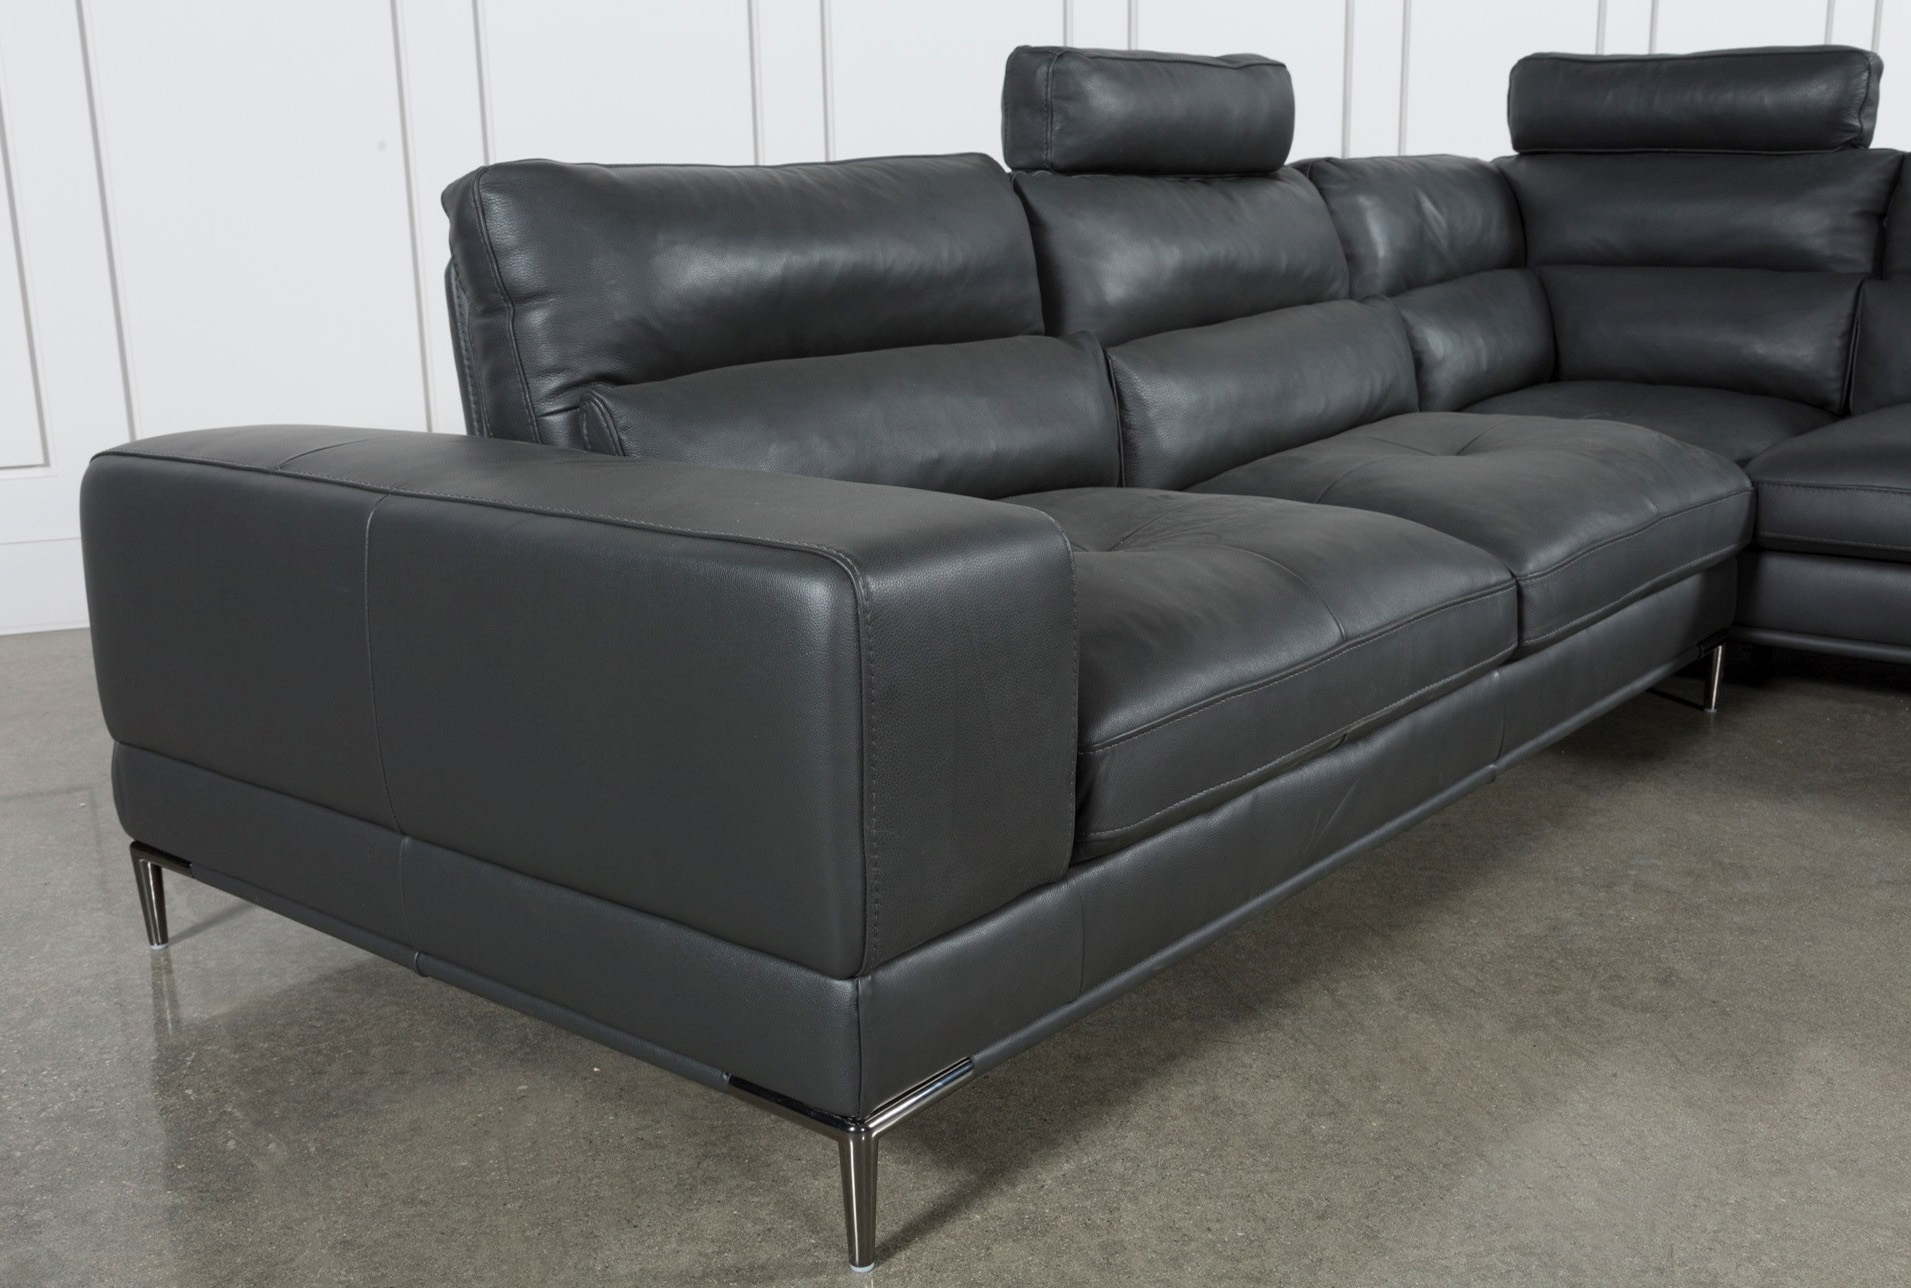 Tenny Dark Grey 2 Piece Right Facing Chaise Sectional W/2 Headrest pertaining to Tenny Dark Grey 2 Piece Right Facing Chaise Sectionals With 2 Headrest (Image 30 of 30)